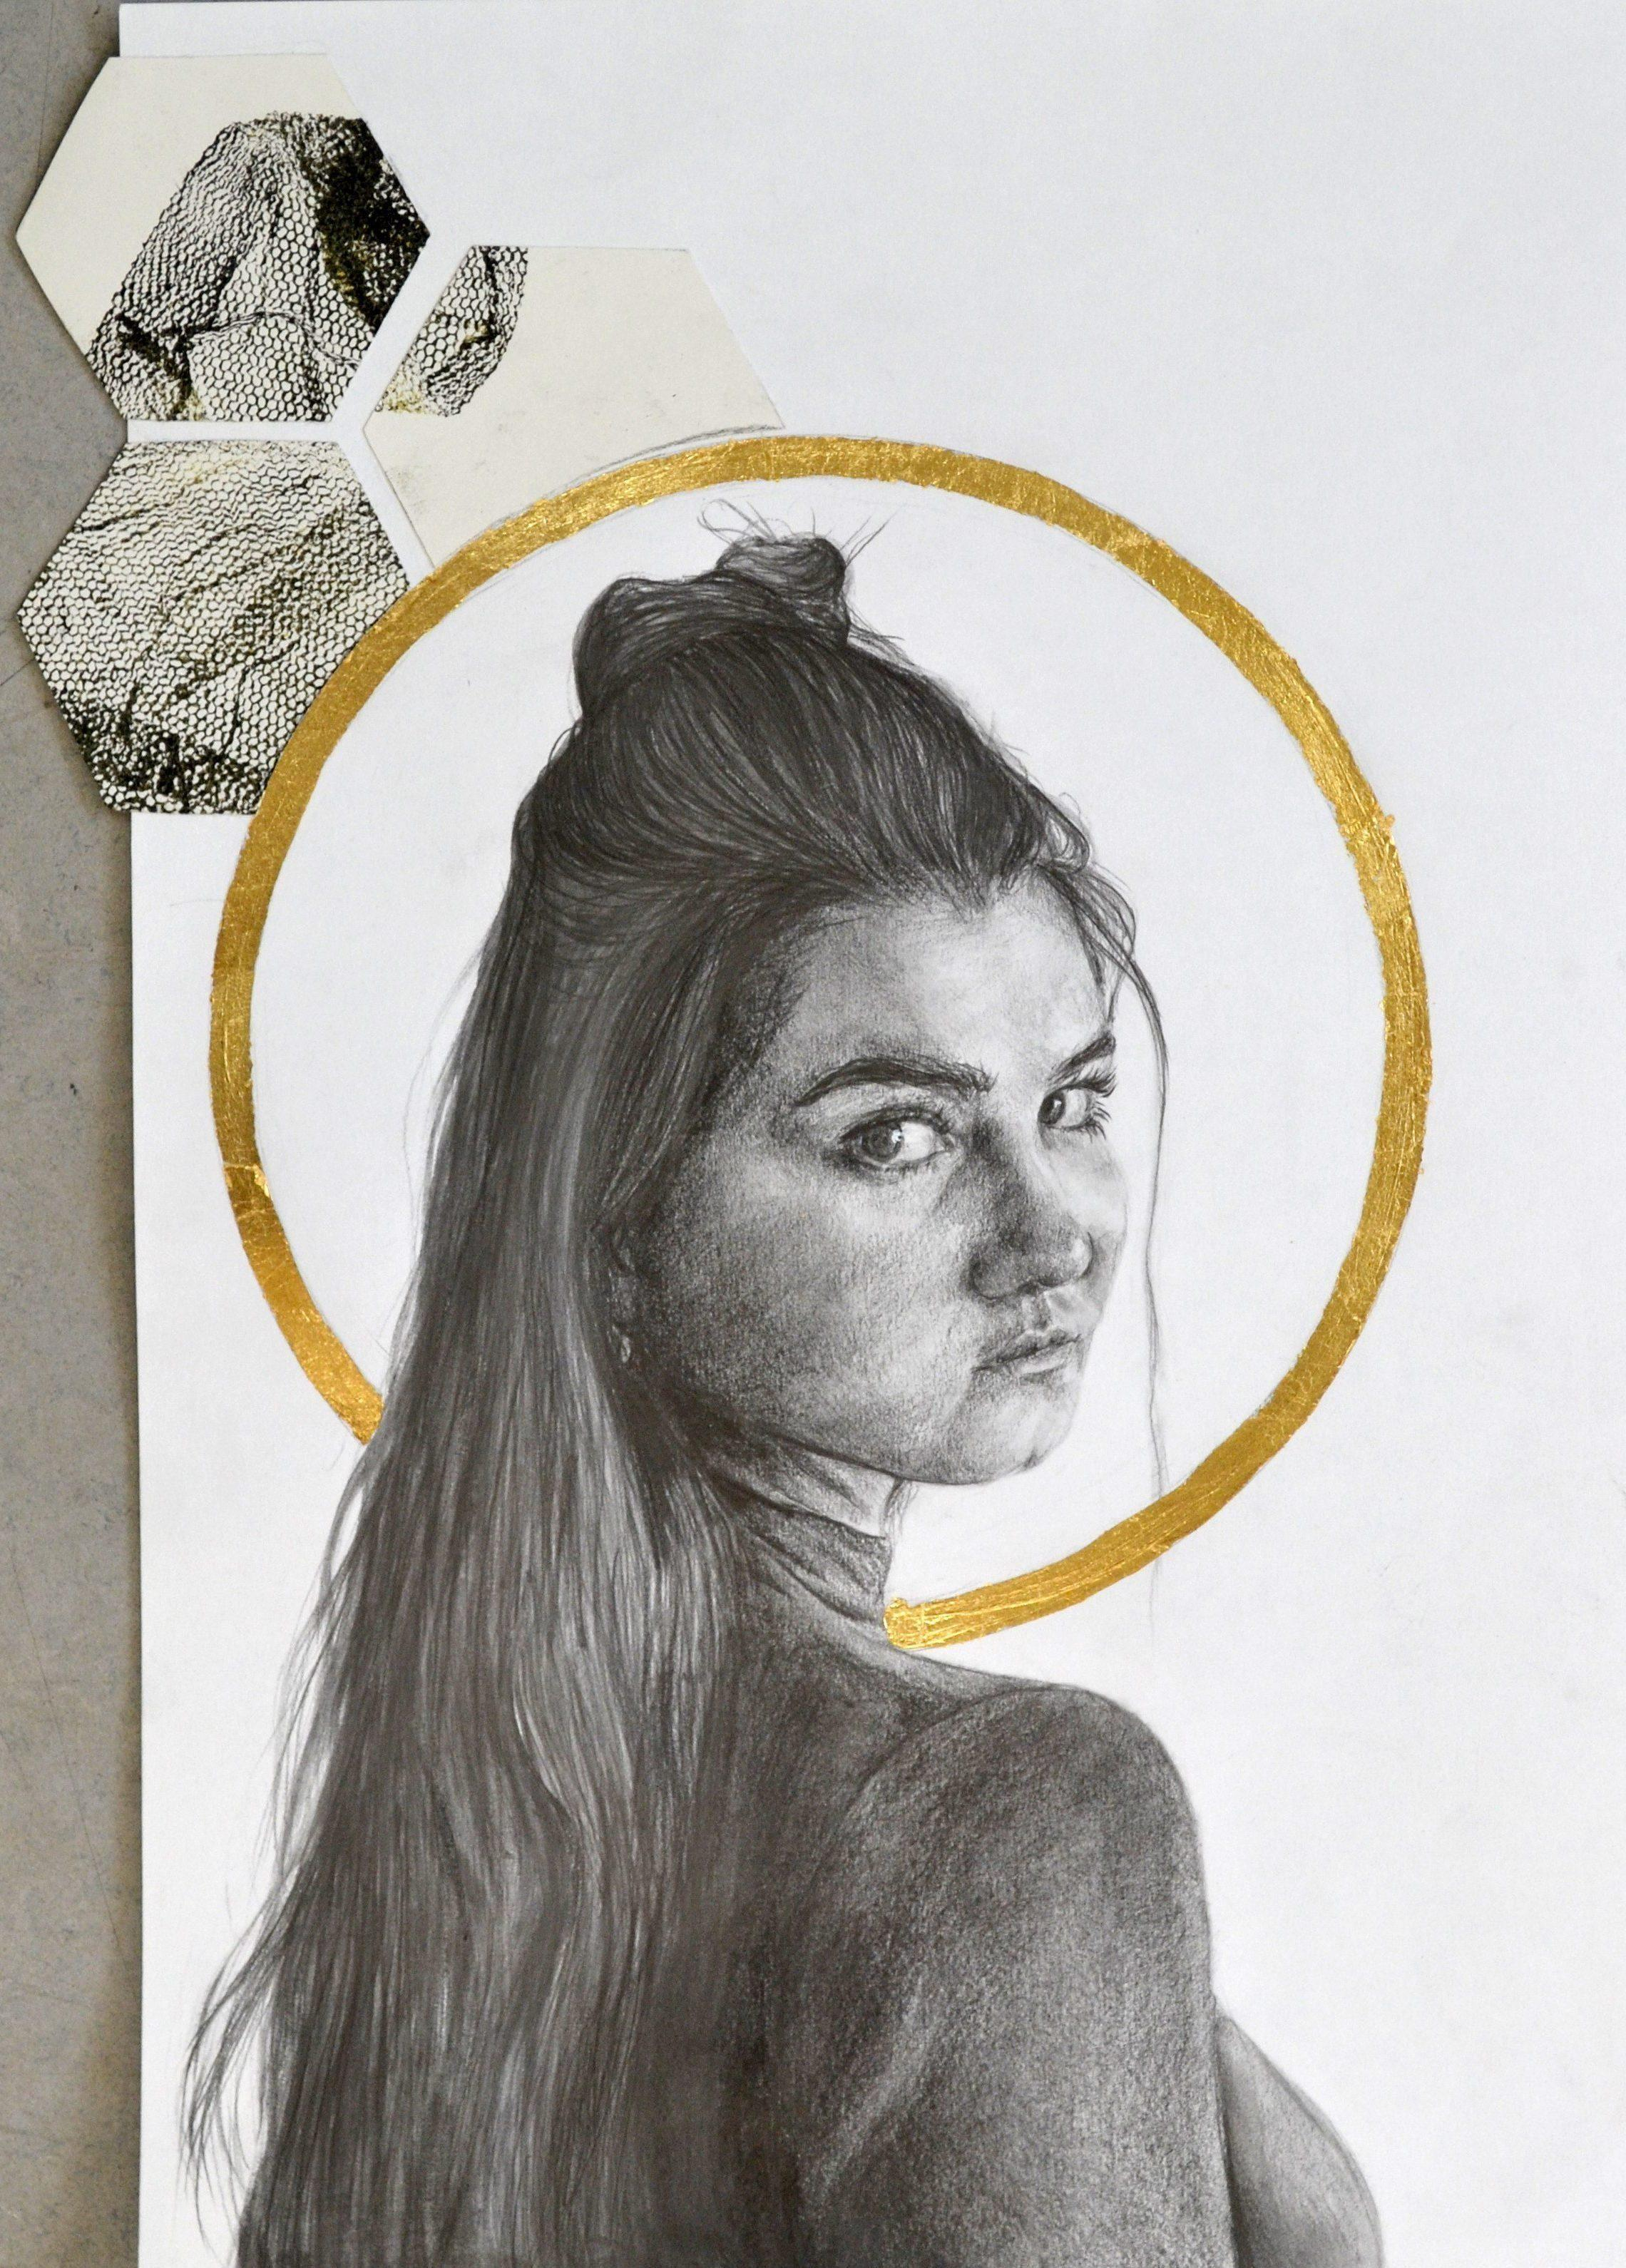 Drawing by A Level student